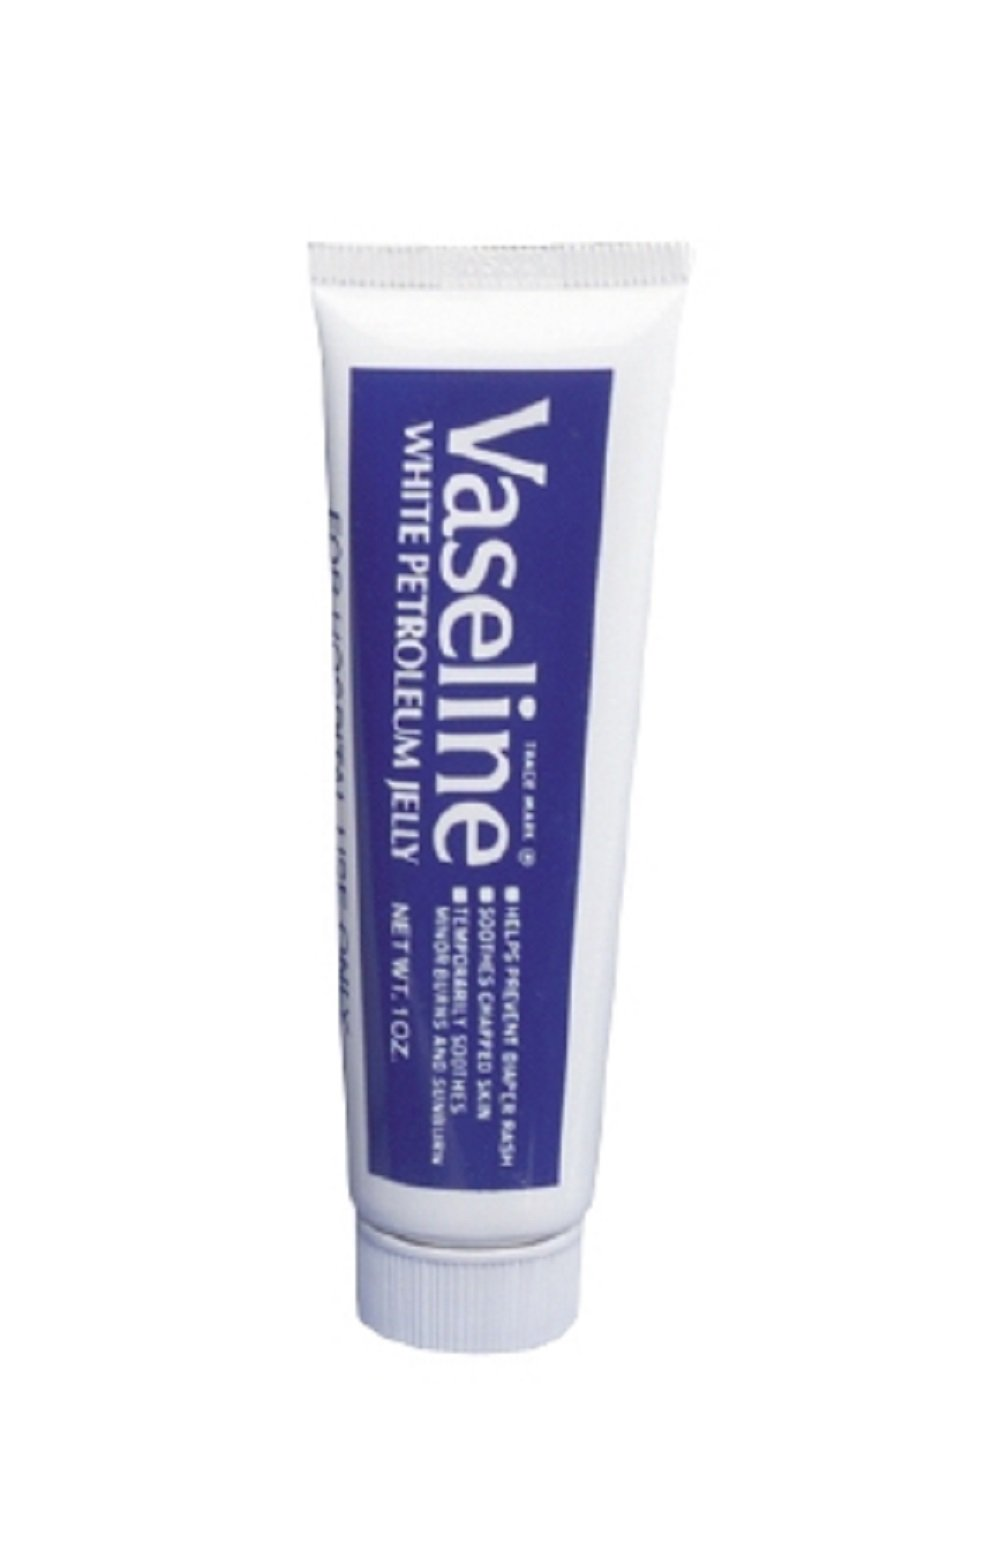 Vaseline - Petroleum Jelly - 1 oz. - Tube - NonSterile - 144/Case-McK